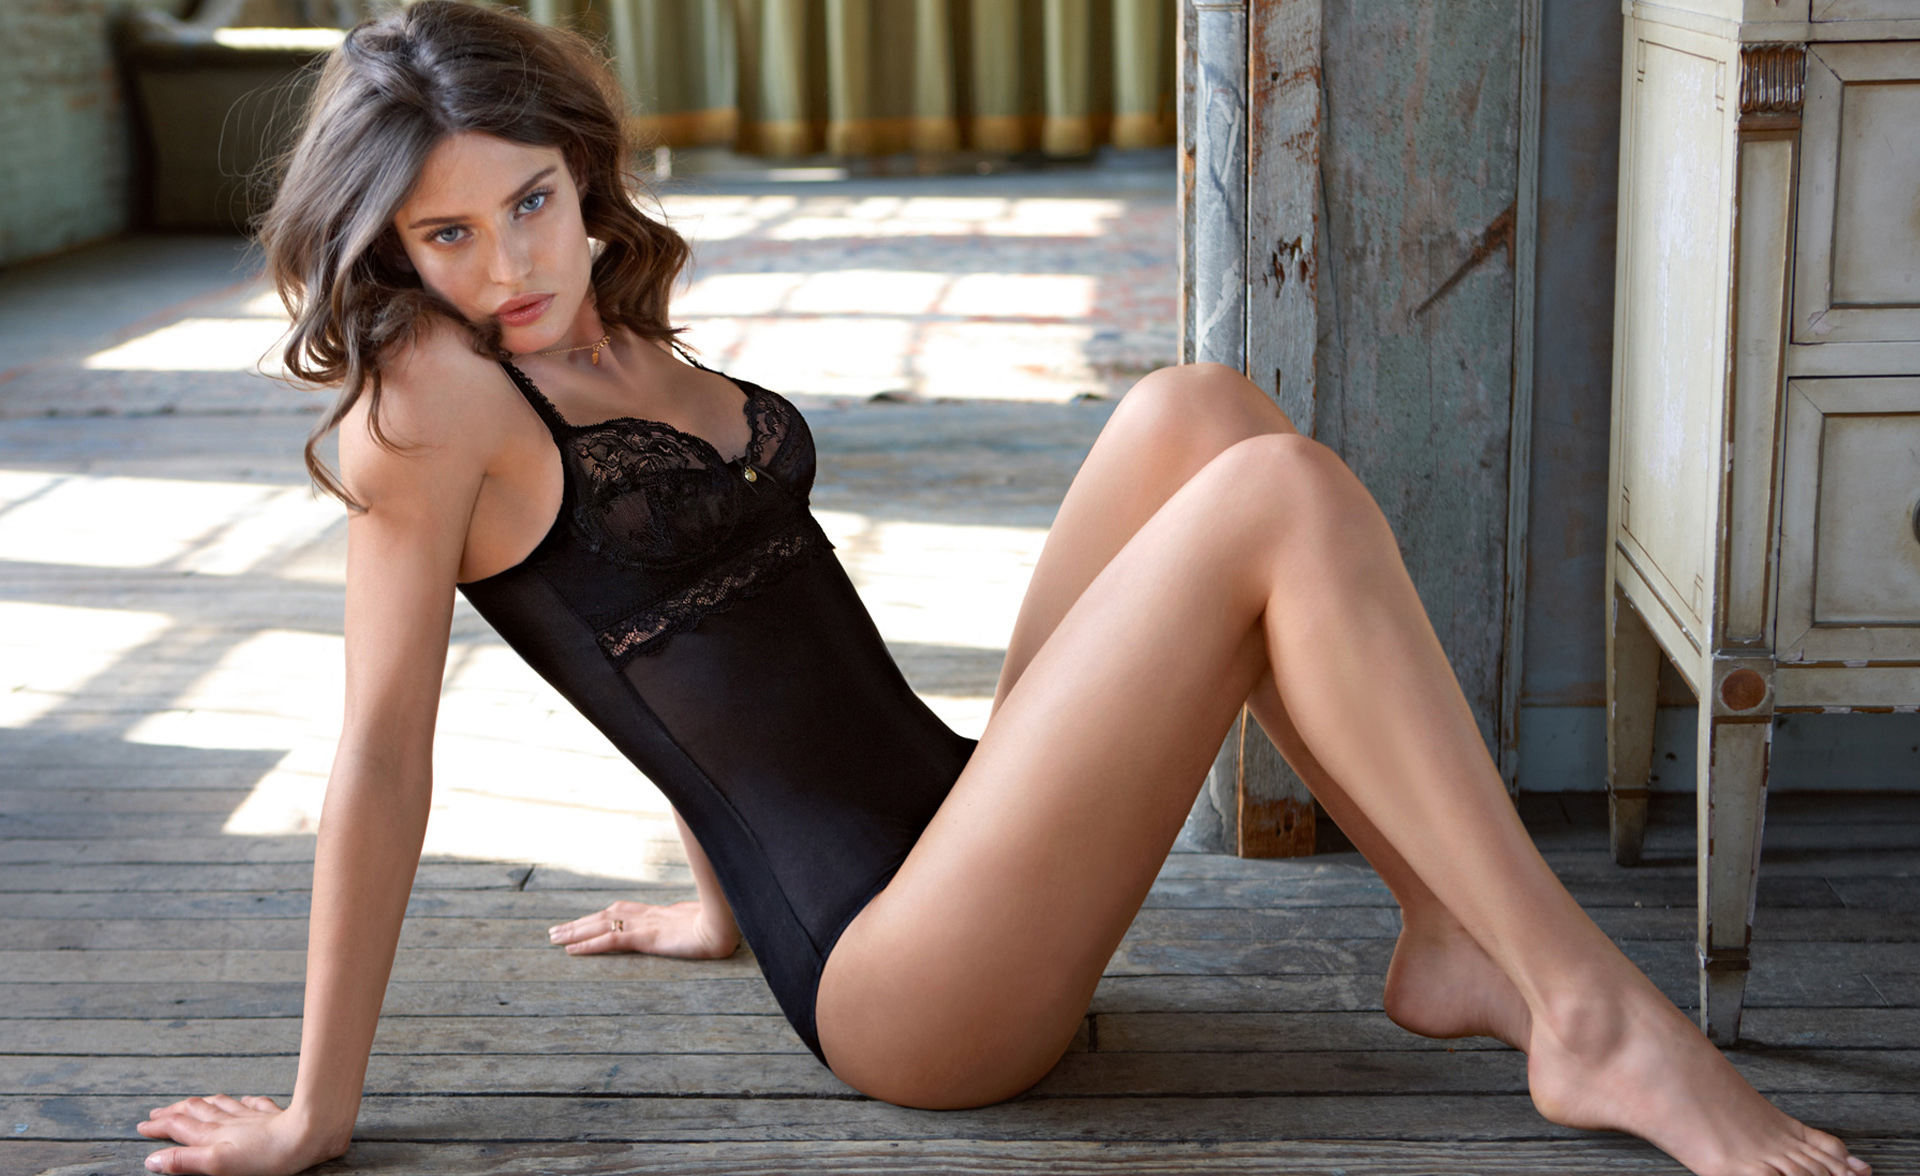 Facebook Covers For Bianca Balti • PoPoPics.com